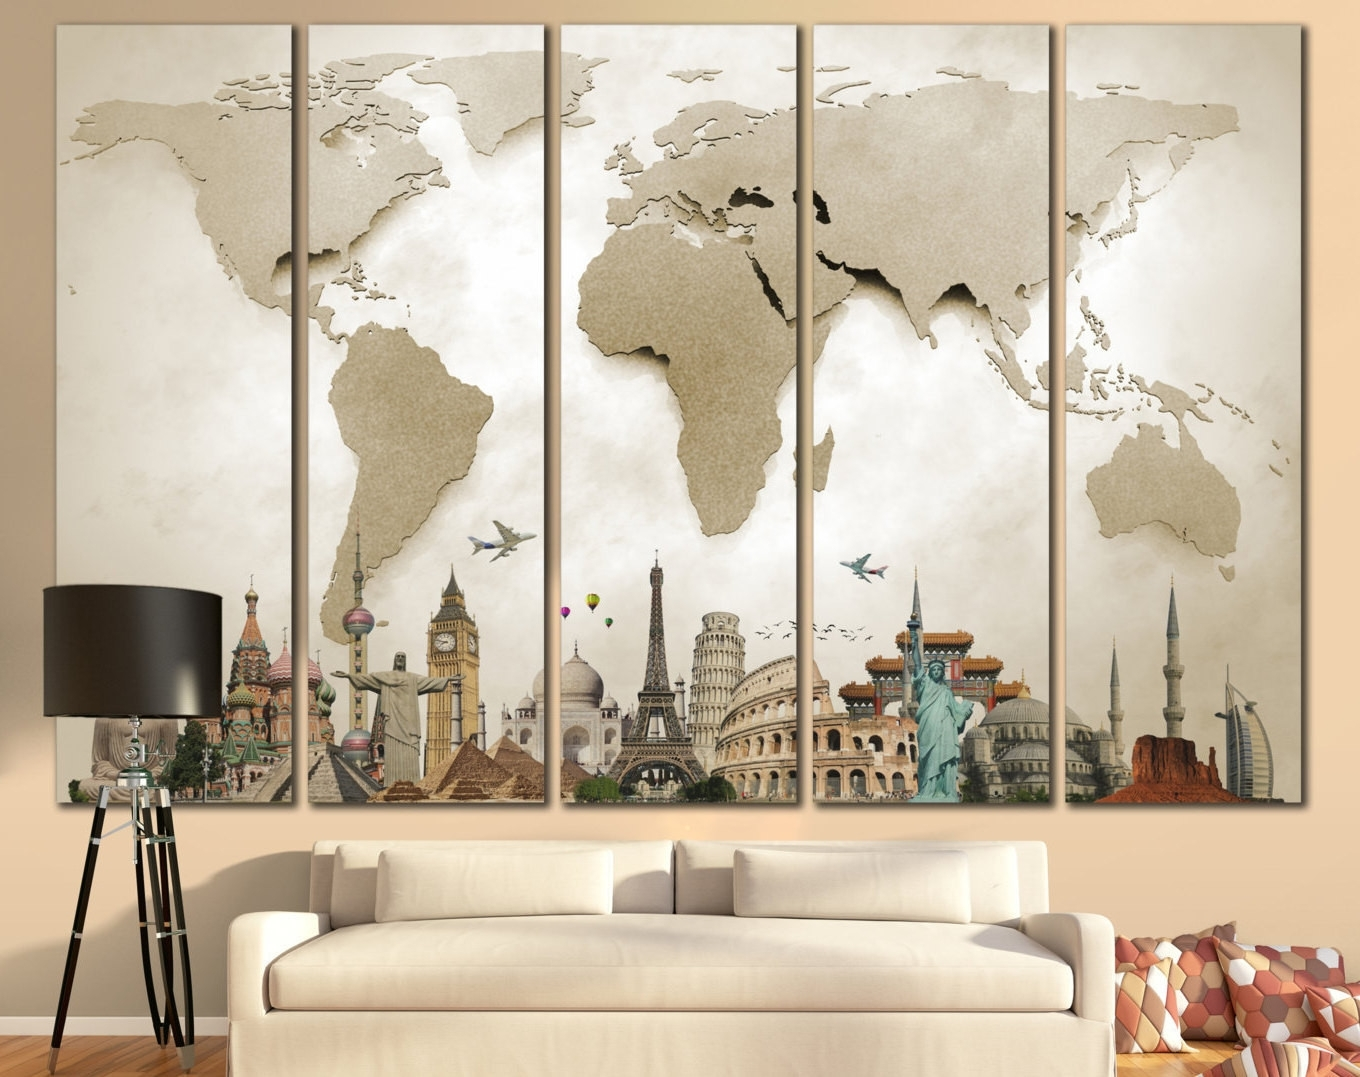 33 Awesome Decorative Wall Art Inspiration Of Ross Wall Art | Wall With Regard To Latest Ross Wall Art (View 18 of 20)